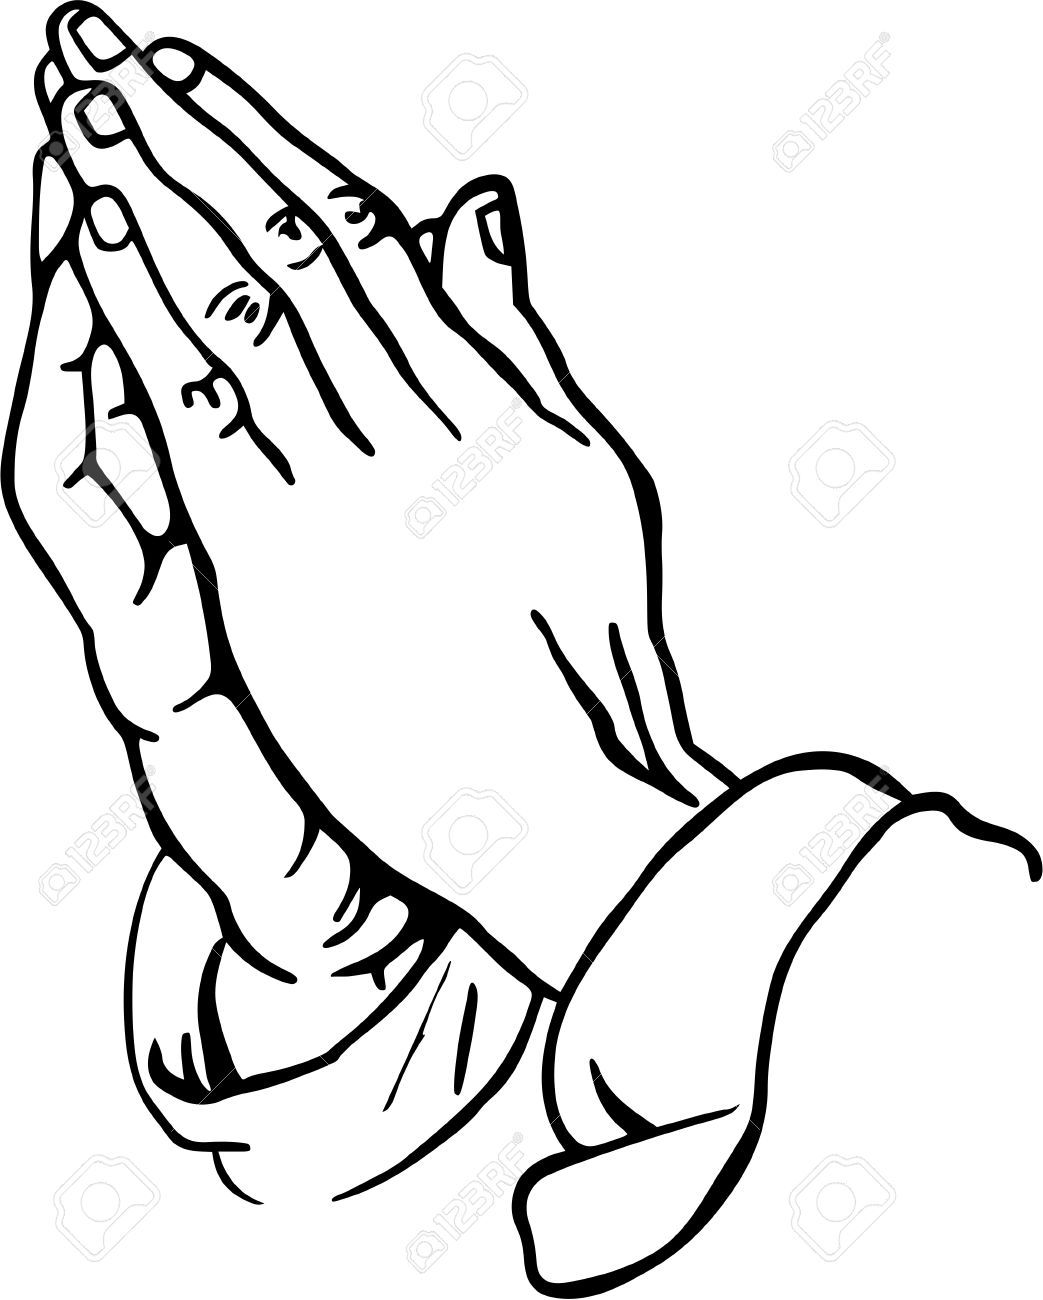 praying hands clipart stock photo picture and royalty free image rh pinterest com praying hands clip art black and white praying hands clip art images